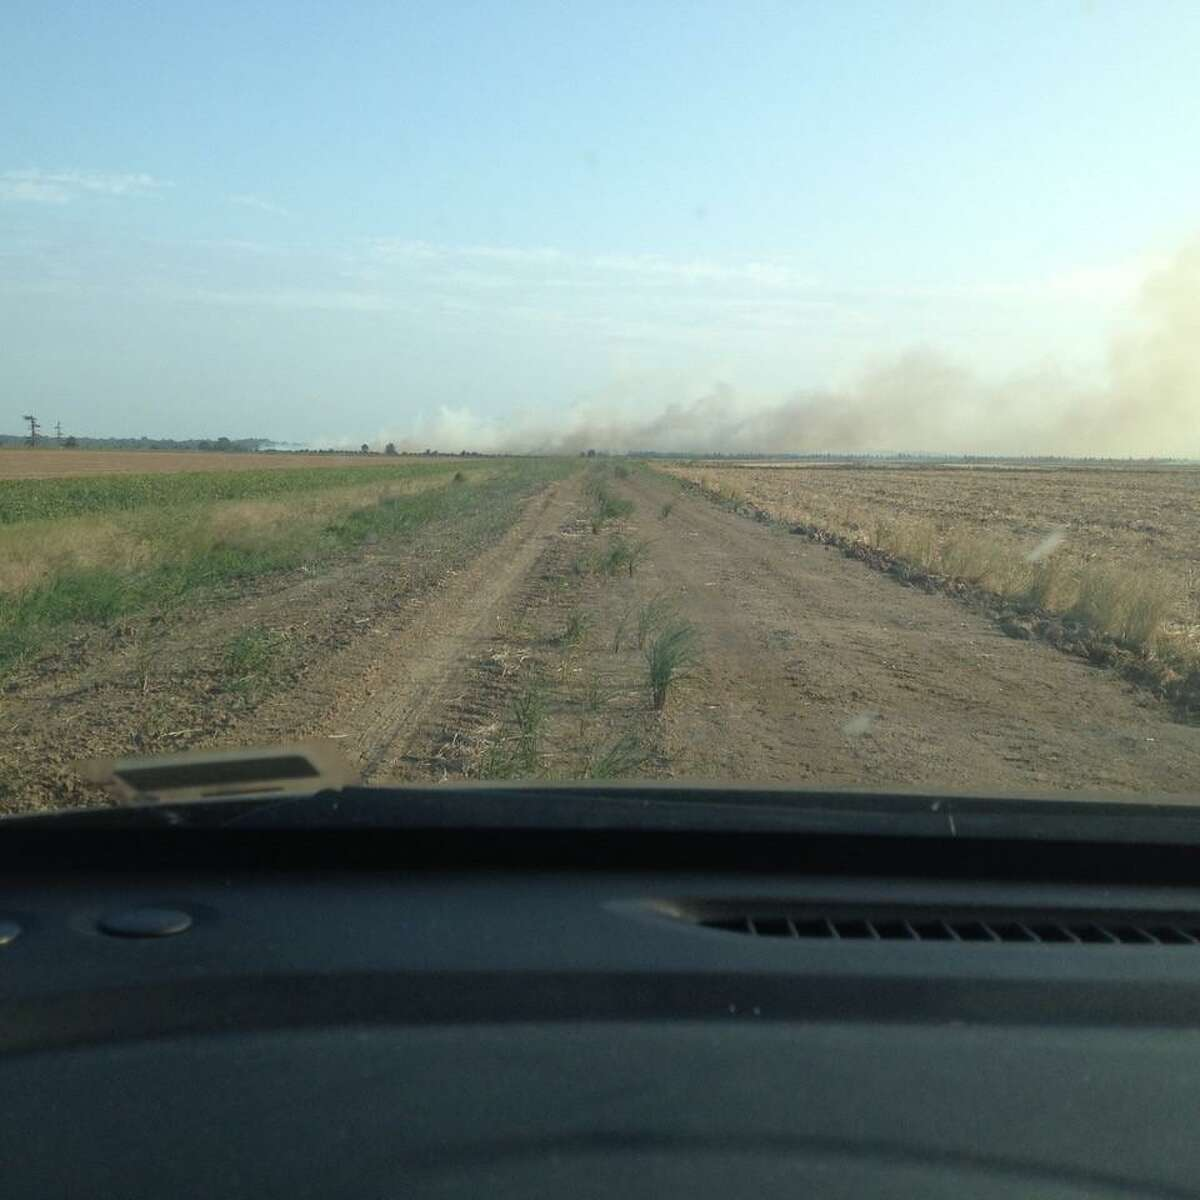 Farmers burn field stubble at the end of a one-lane dirt road near Kilbourne Highway in Jones, La., which New Milford resident Gerard Monaghan visited this year as a Census enumerator.